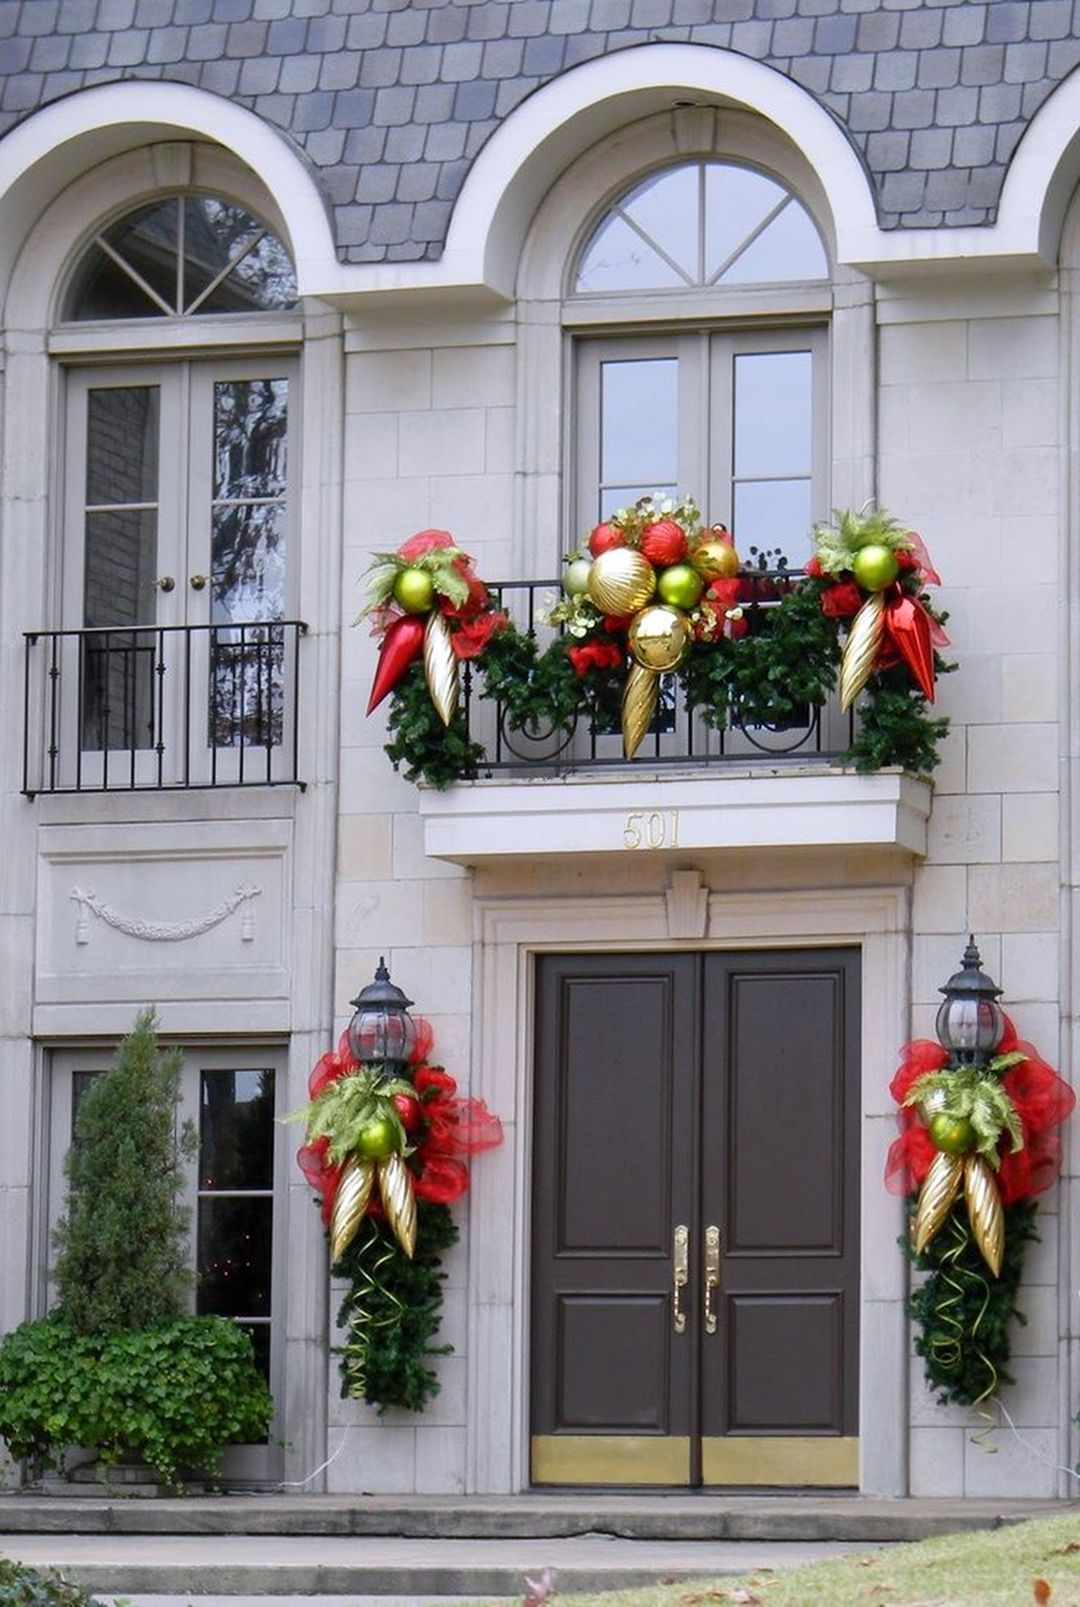 10 Charming Christmas Decorations for Small Apartment Balcony  #ApartmentBalconyDecoration #C... - Outdoor Space Ideas - #apartment #ApartmentBalconyDecoration #Balcony #Charming #Christmas #Decorations #Ideas #Outdoor #Small #Space #smallapartmentchristmasdecor